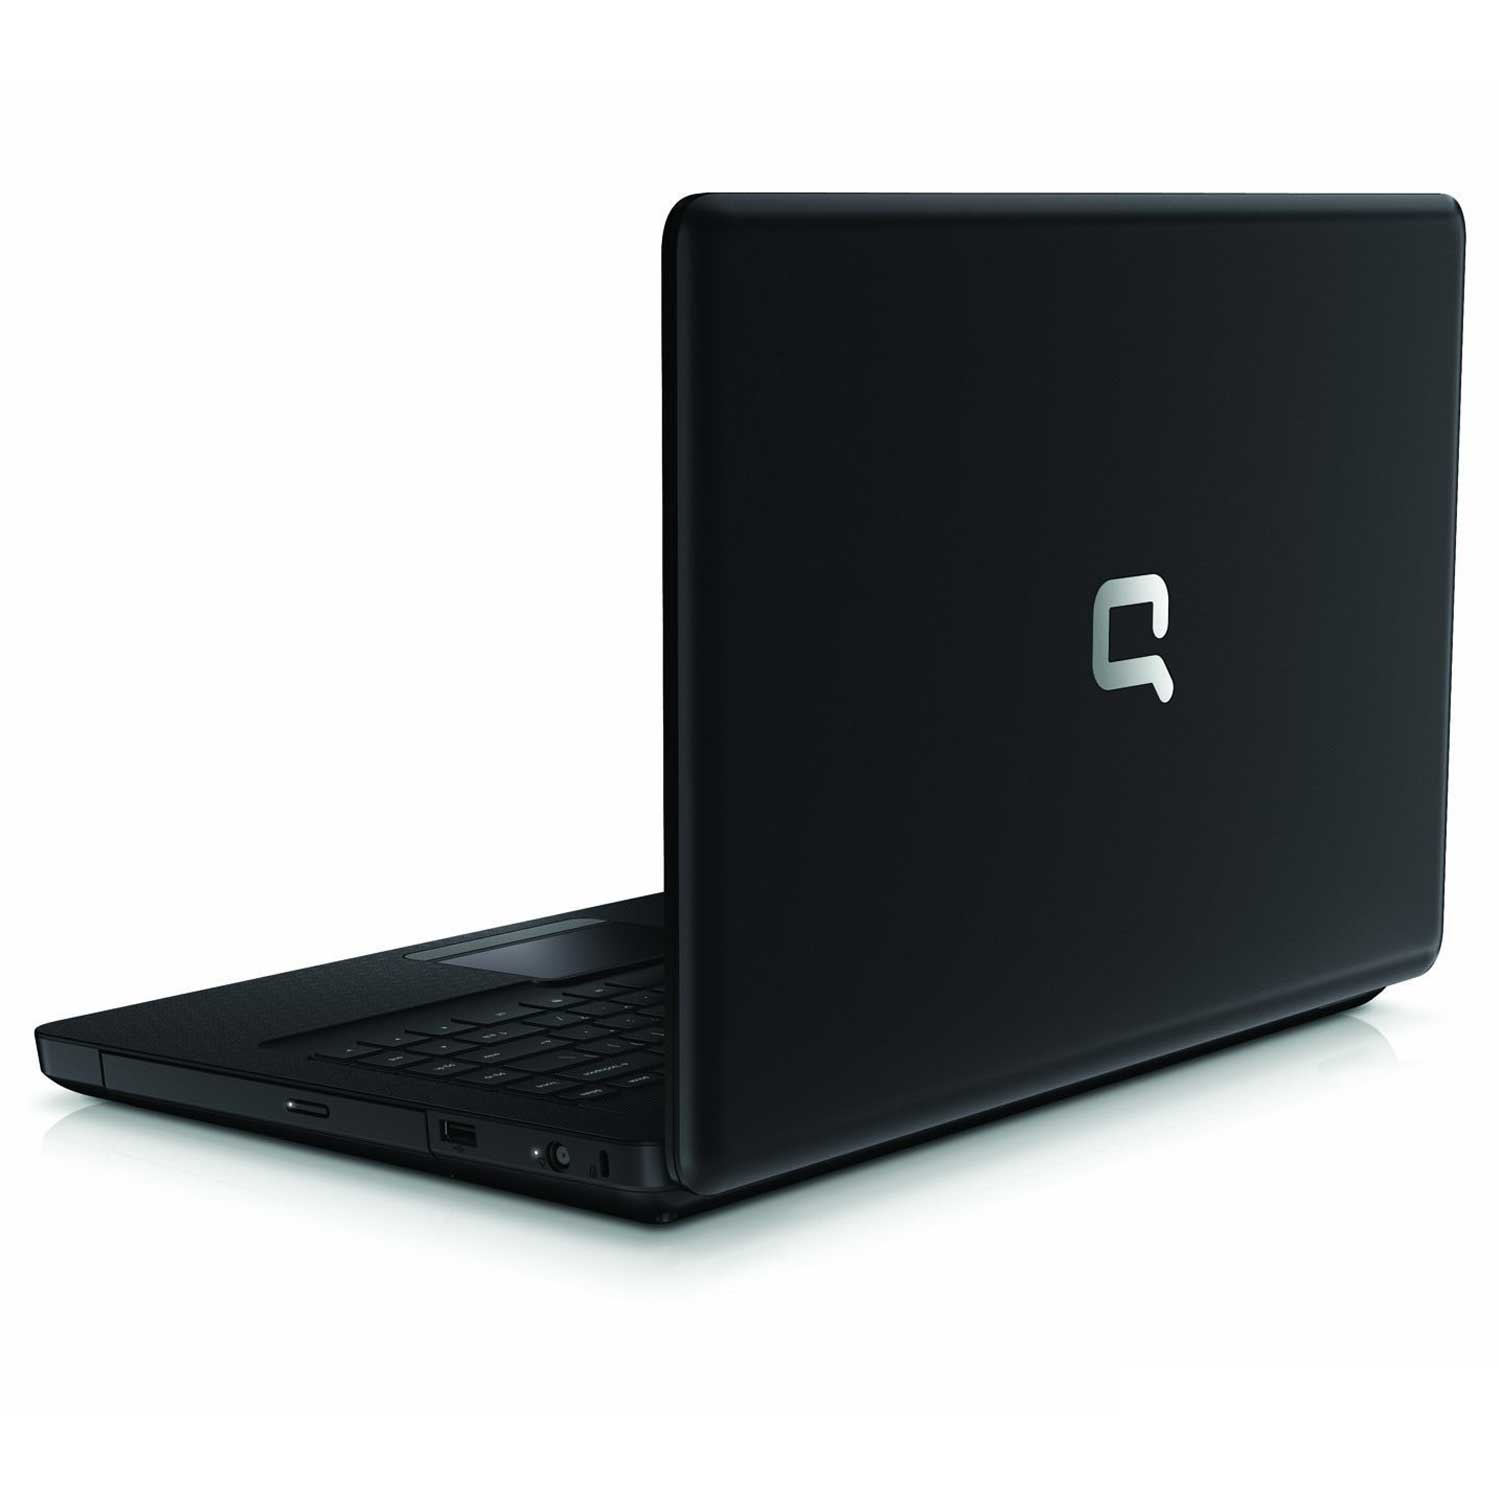 Compaq Presario Cq56102se Laptop Price in Pakistan